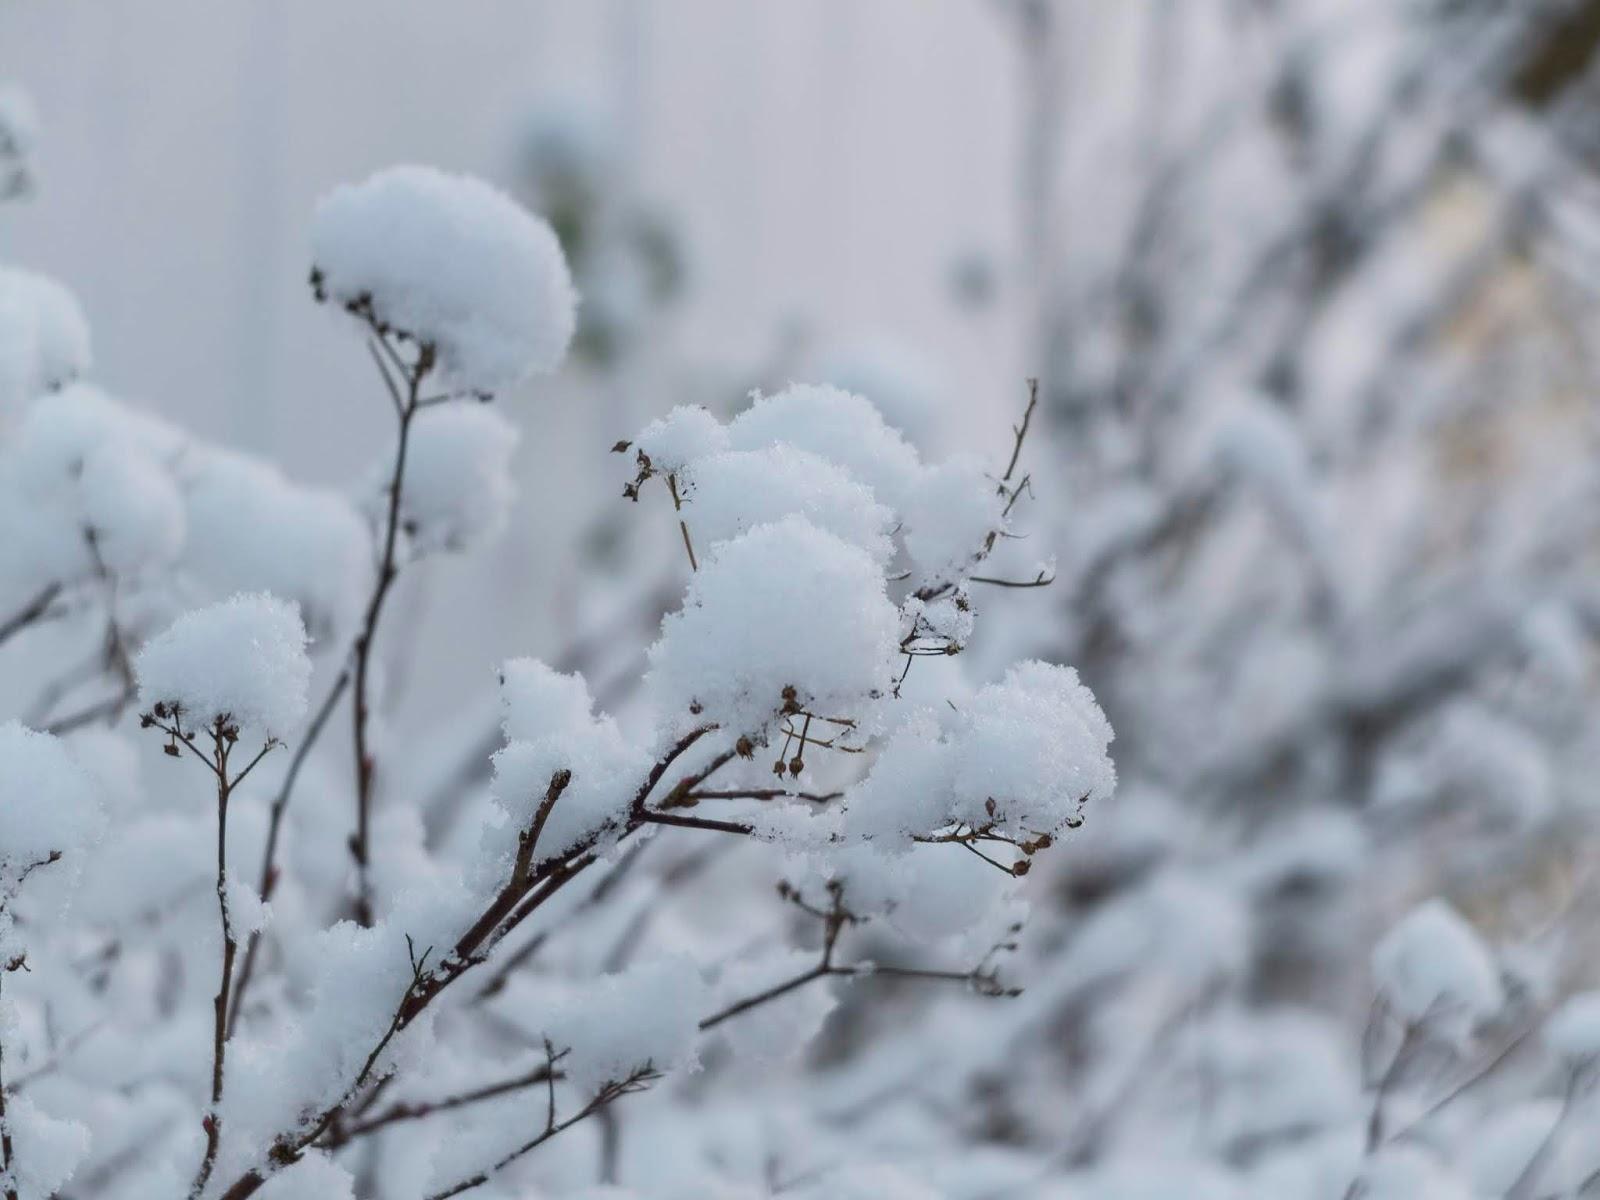 Clusters of snow balls sitting on top of plant branches in my garden.